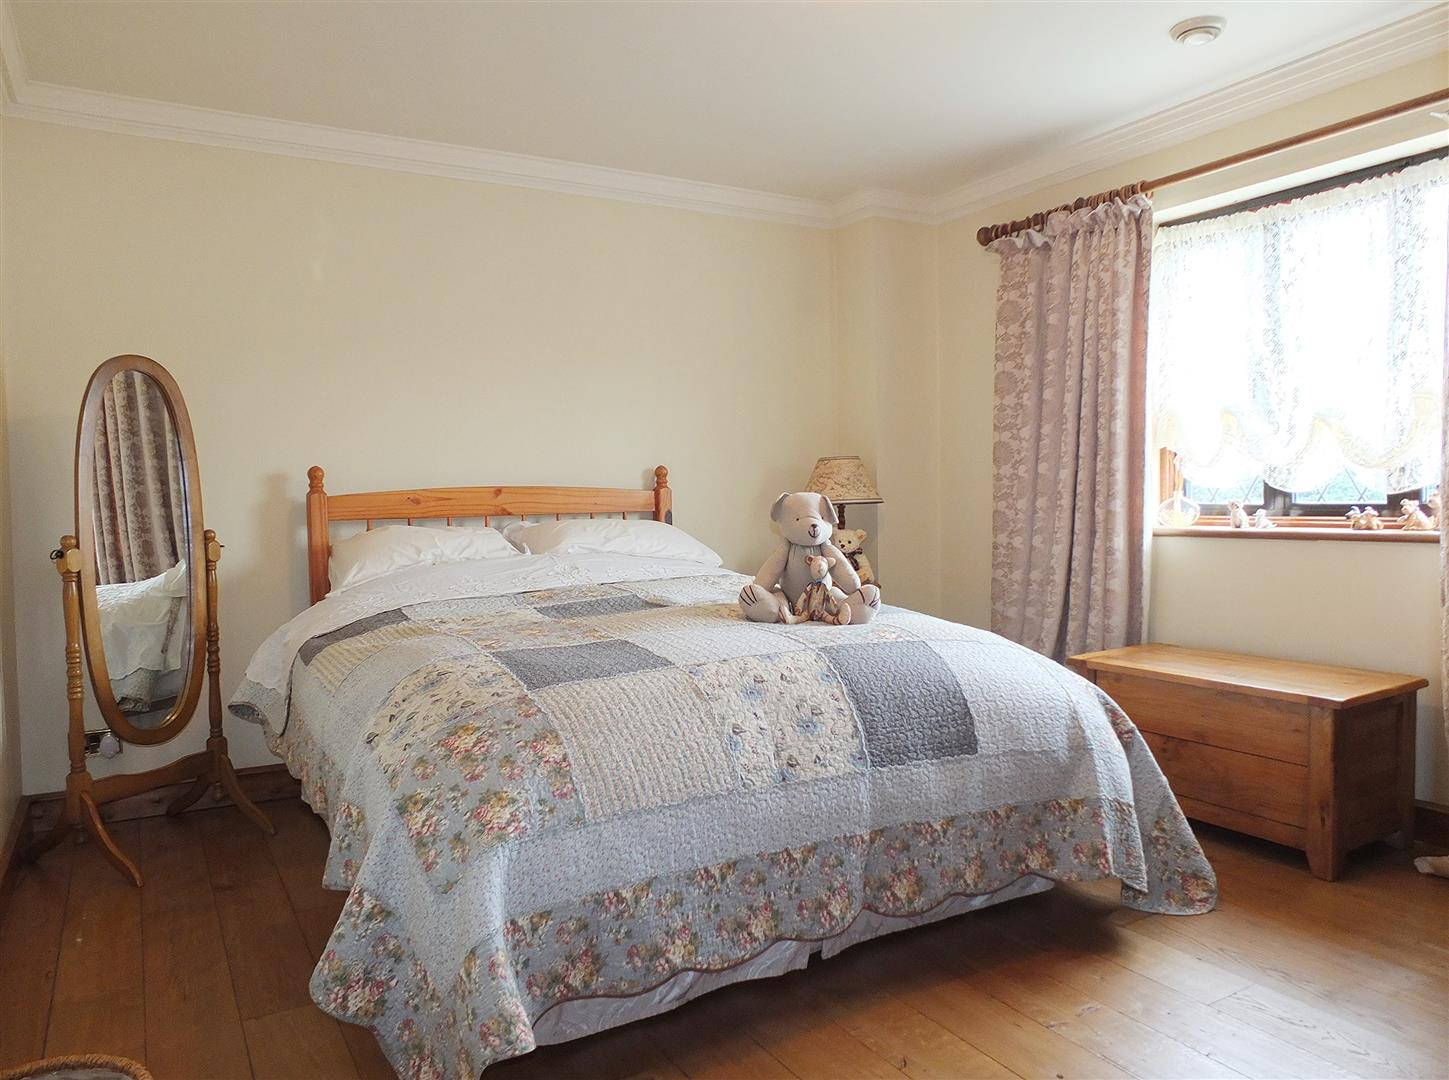 5 bed detached house for sale in Boston, PE20 2DB  - Property Image 20